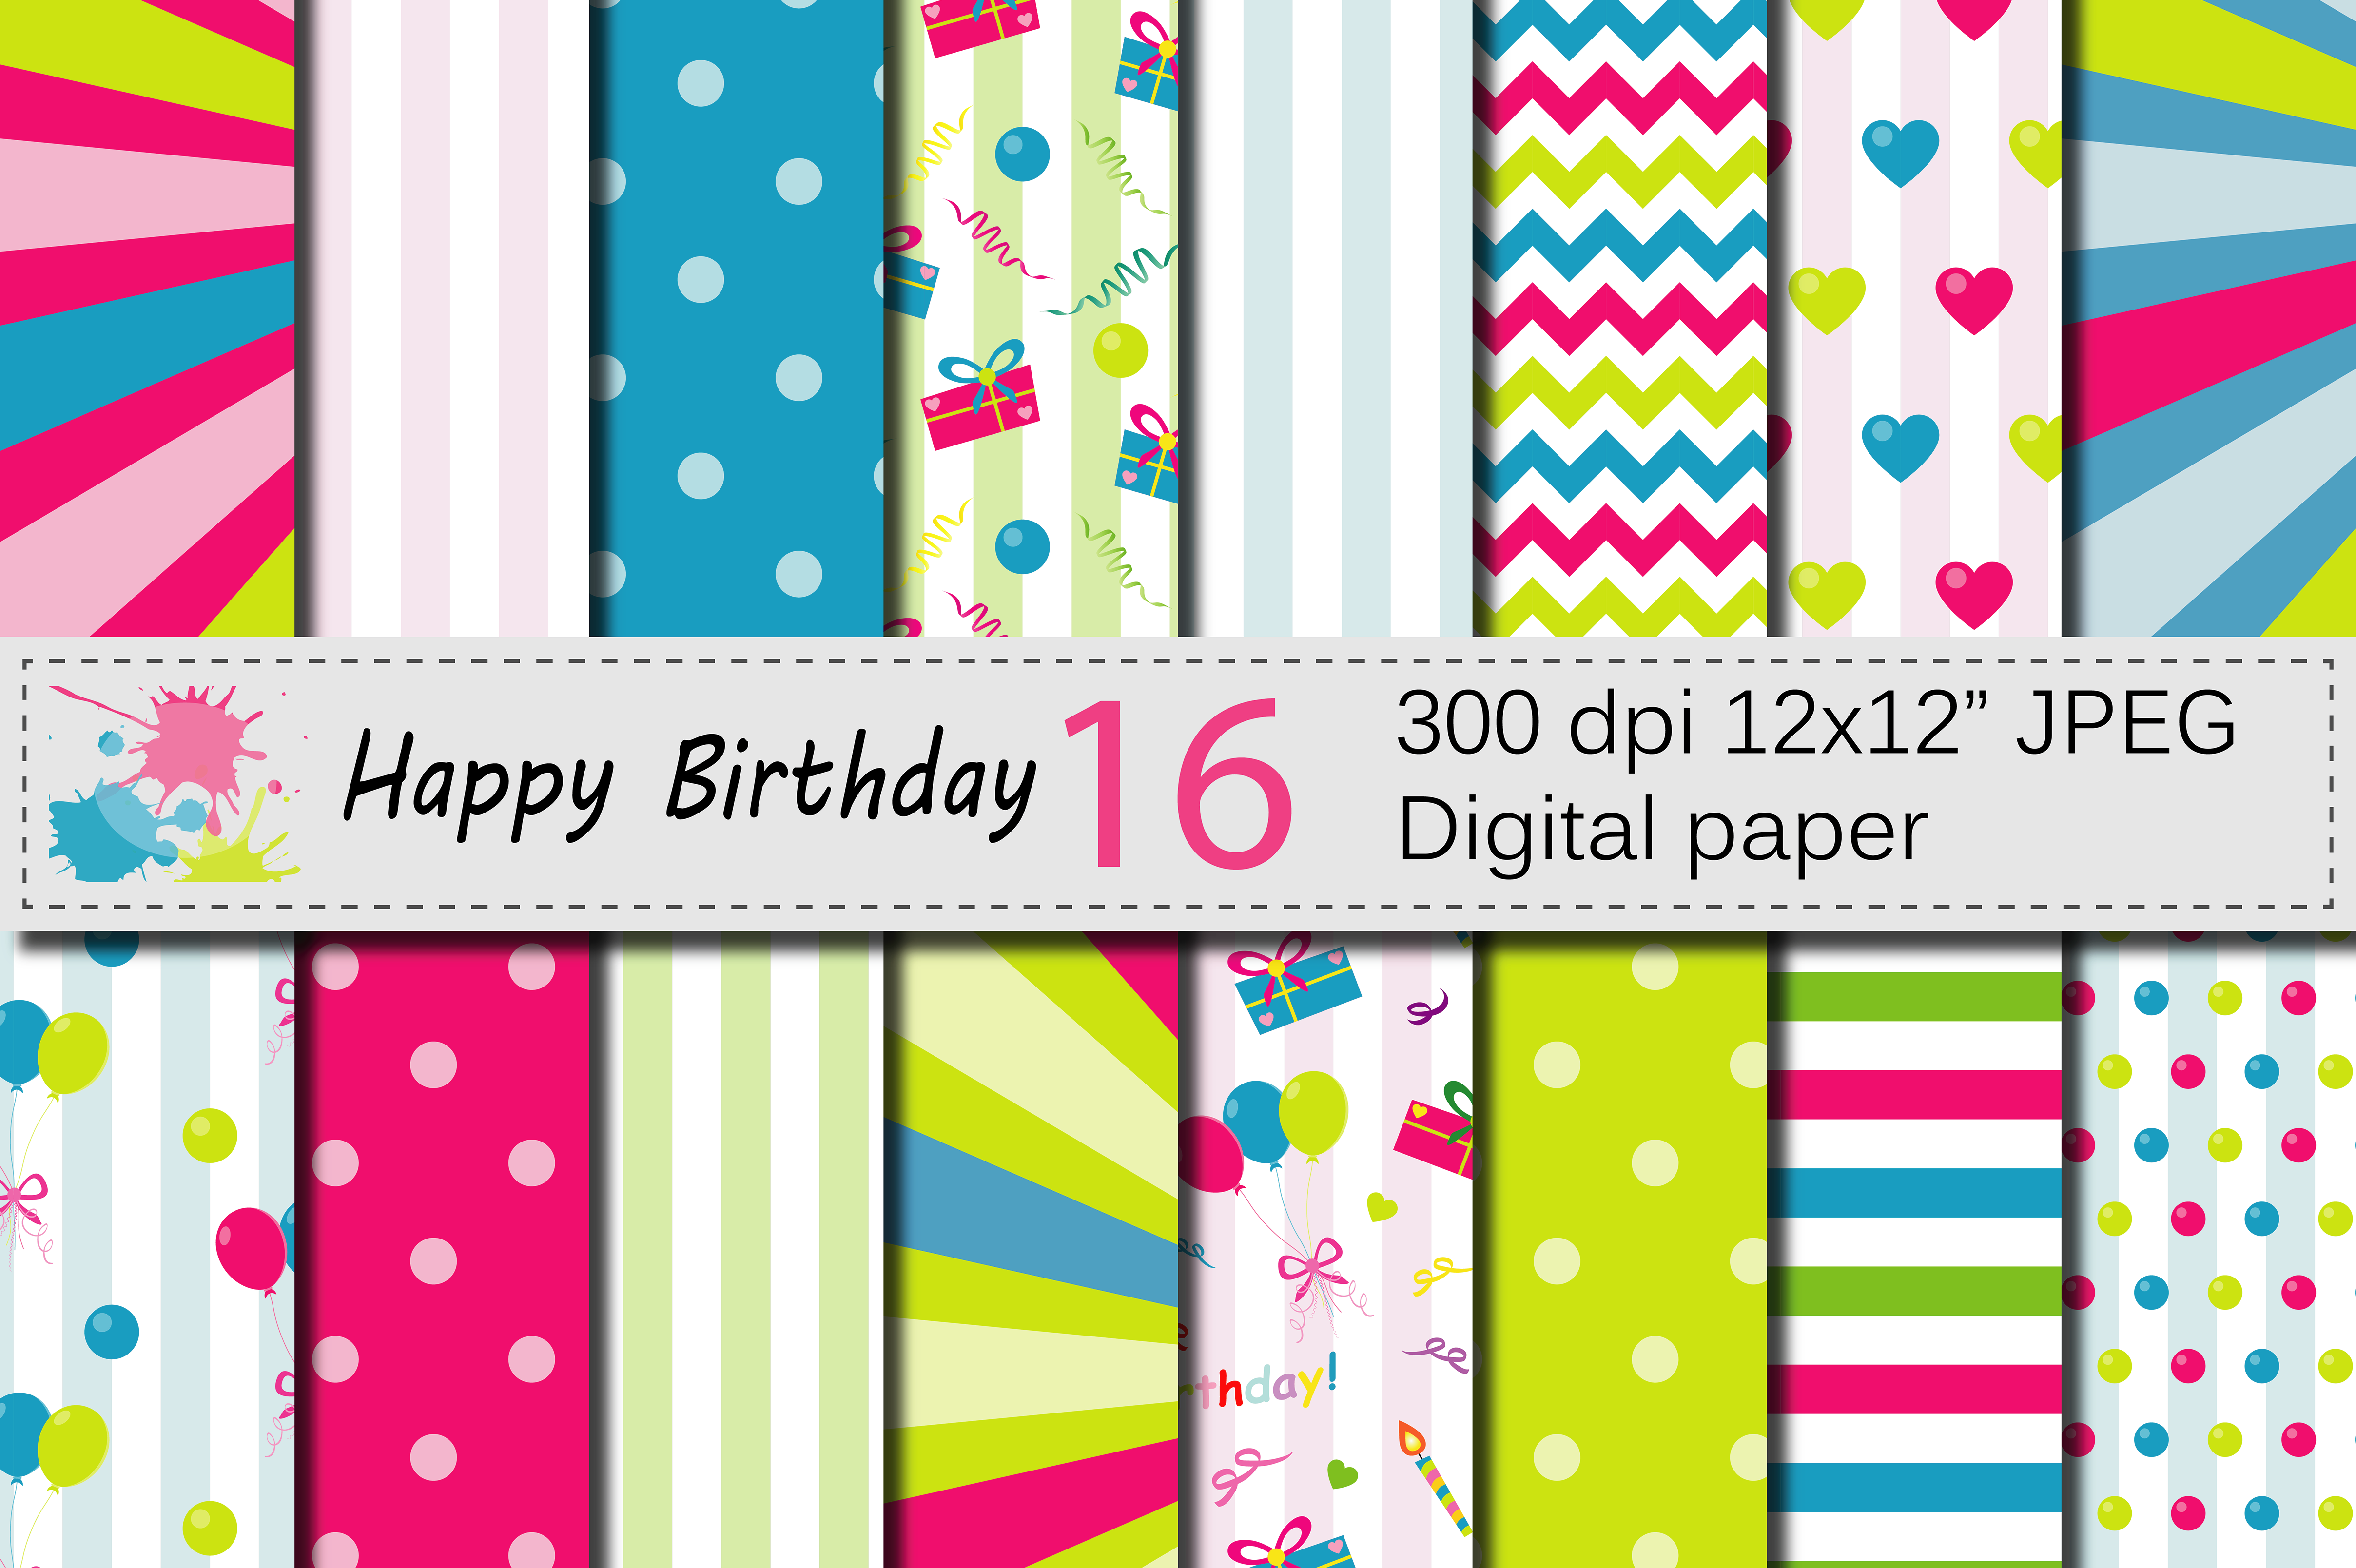 Happy Birthday Digital Papers with Balloons and Presents / Kids Birthday Party Backgrounds Grafik Hintegründe von VR Digital Design